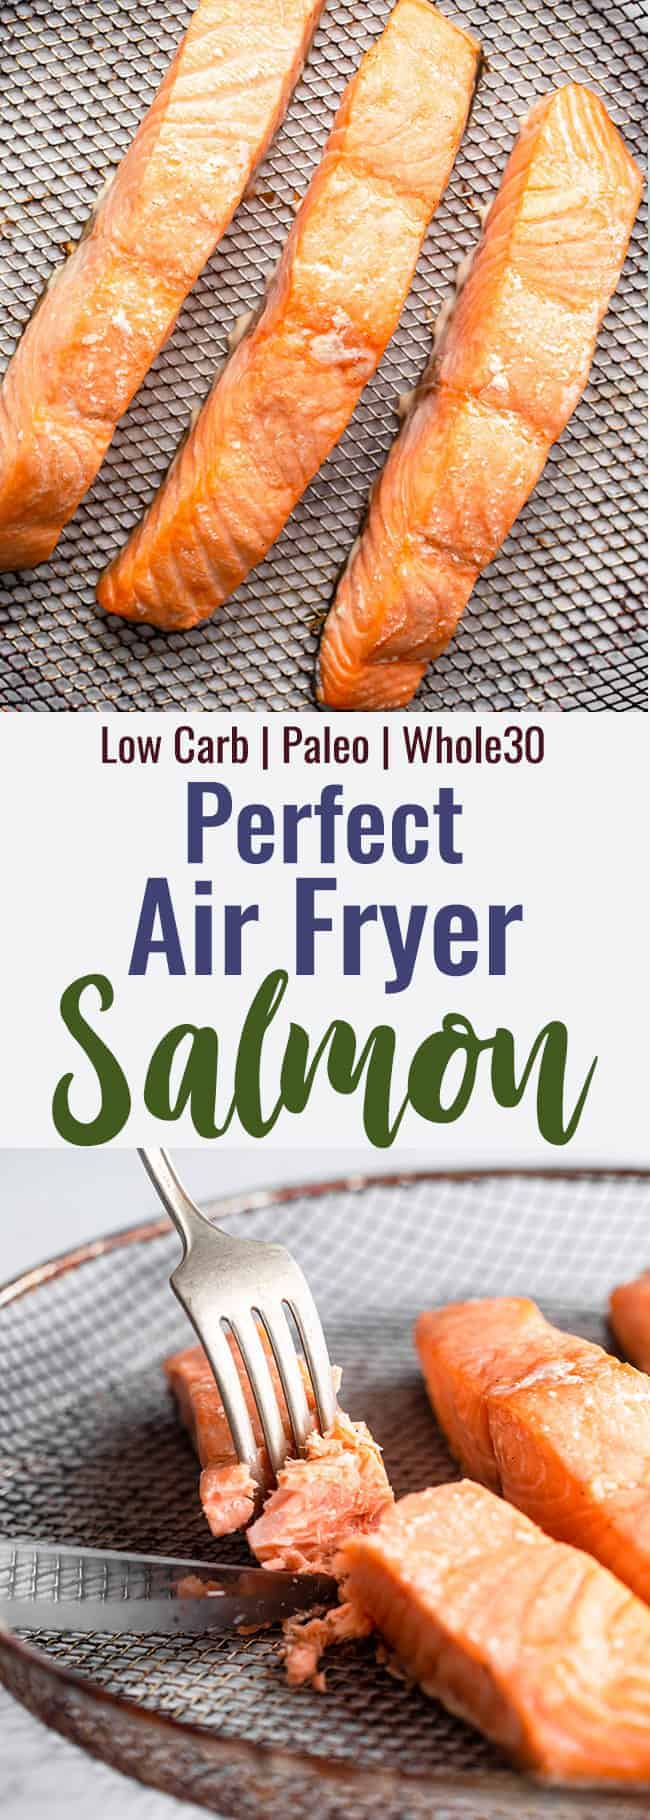 Air fryer salmon collage photo